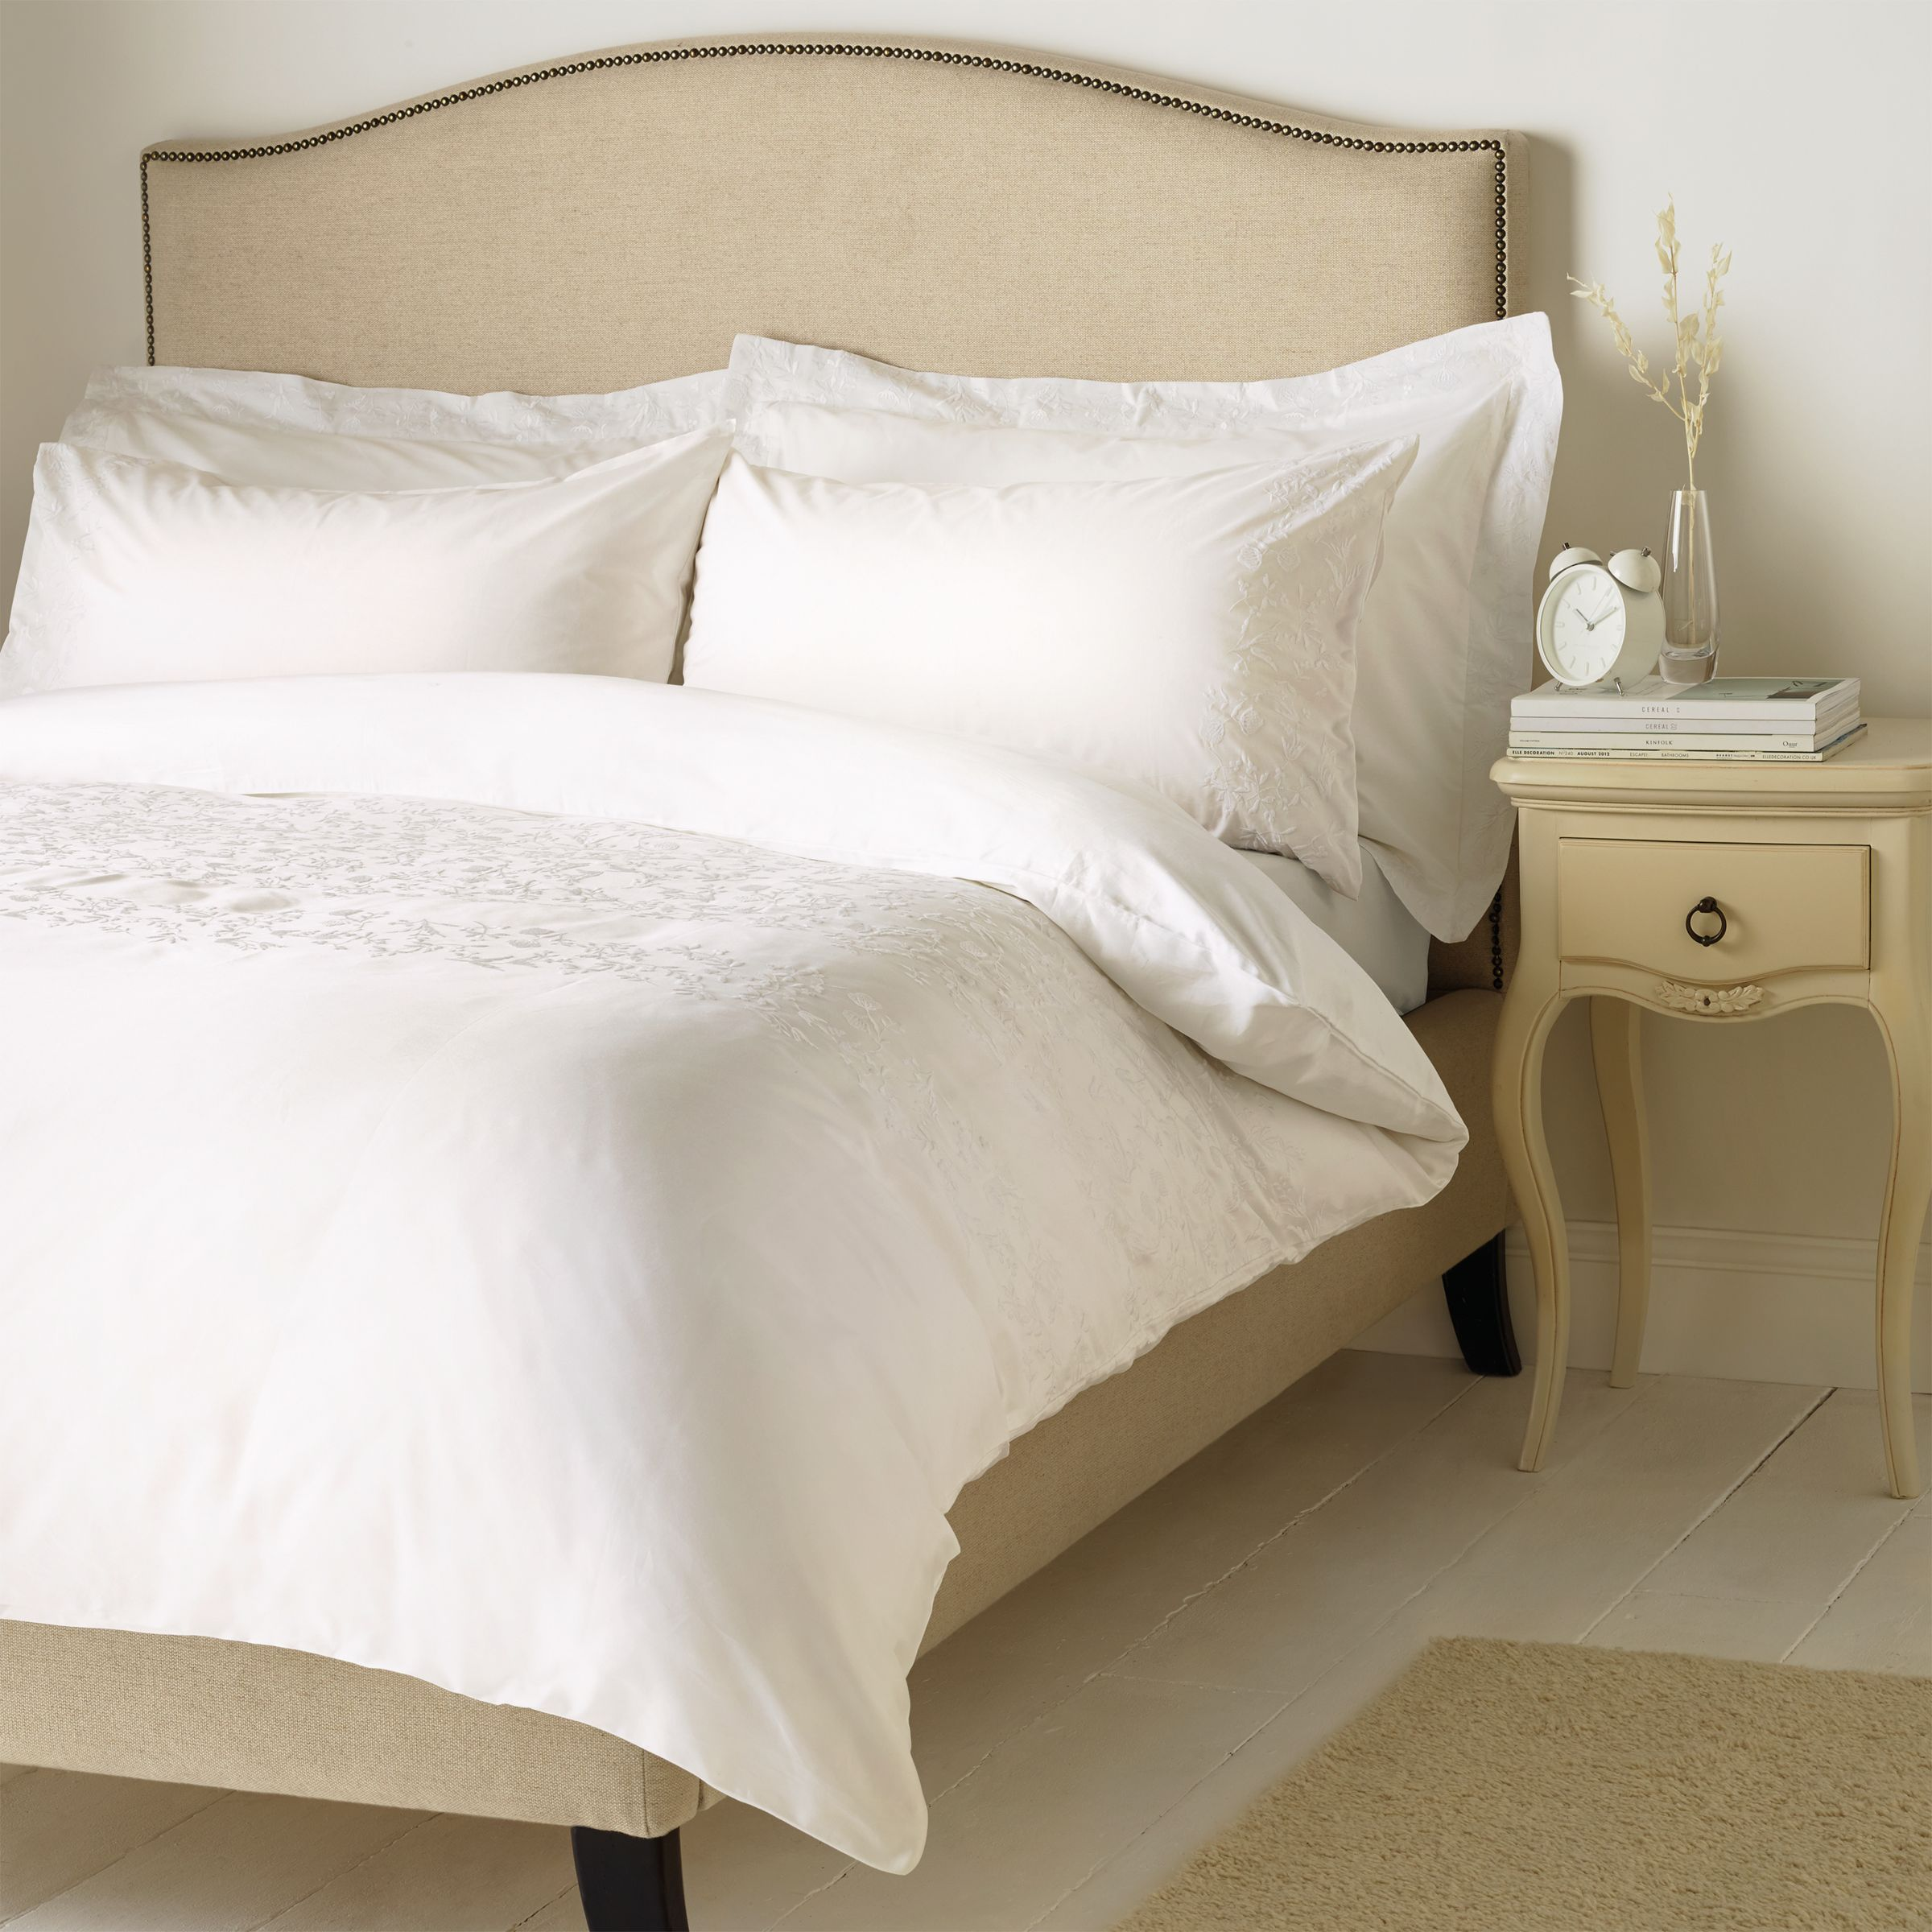 John Lewis Partners Soft And Silky Danielle Embroidered Cotton Bedding White At John Lewis Partners